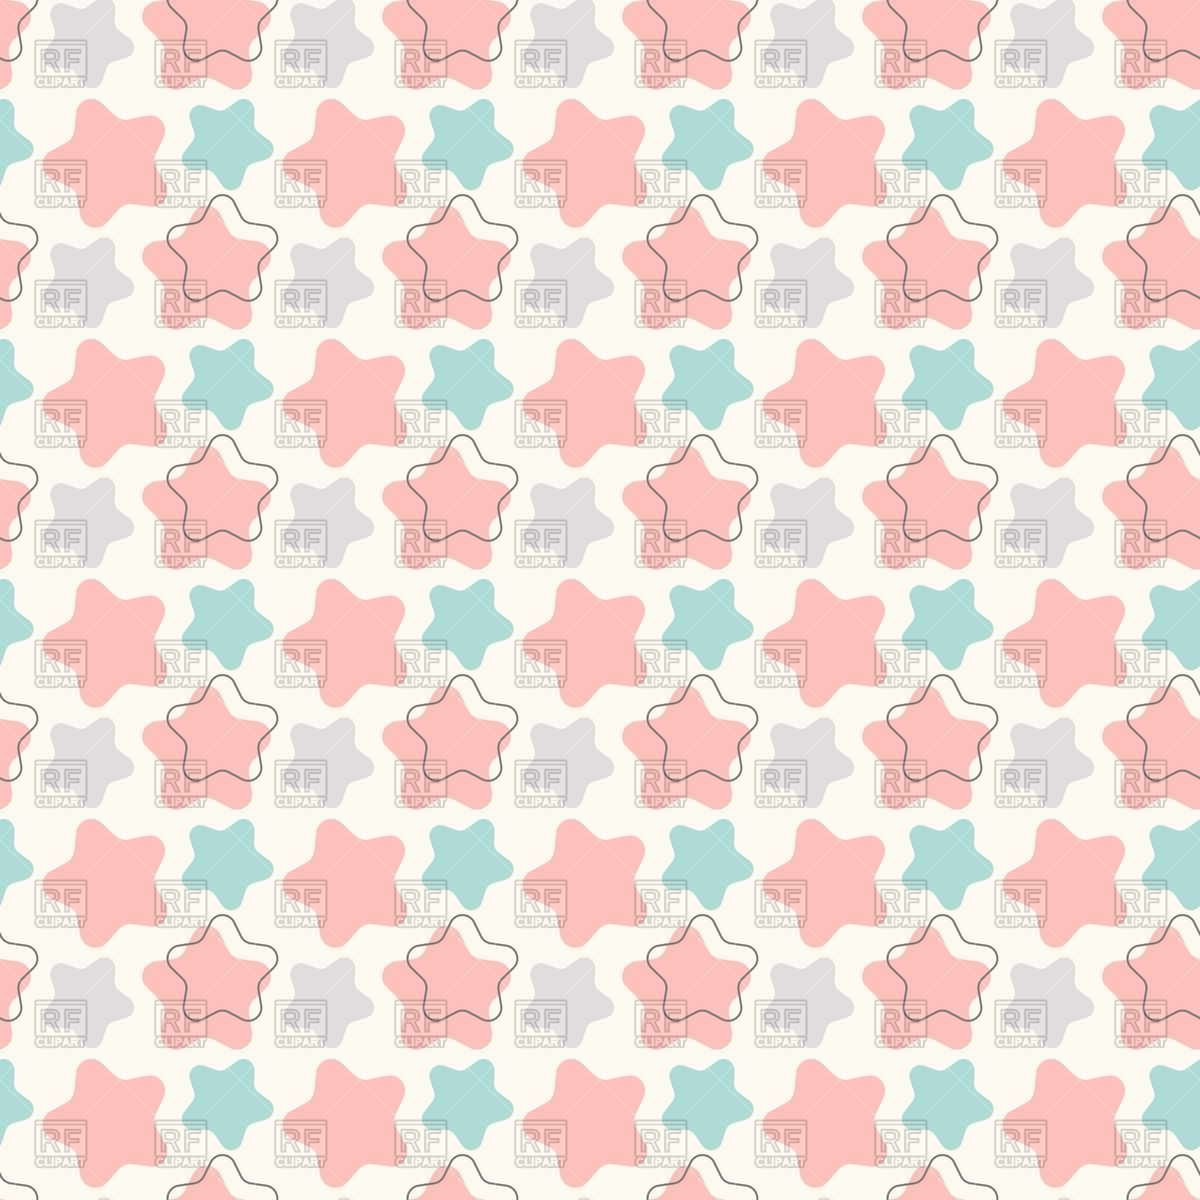 Cute Retro Wallpaper 1200x1200